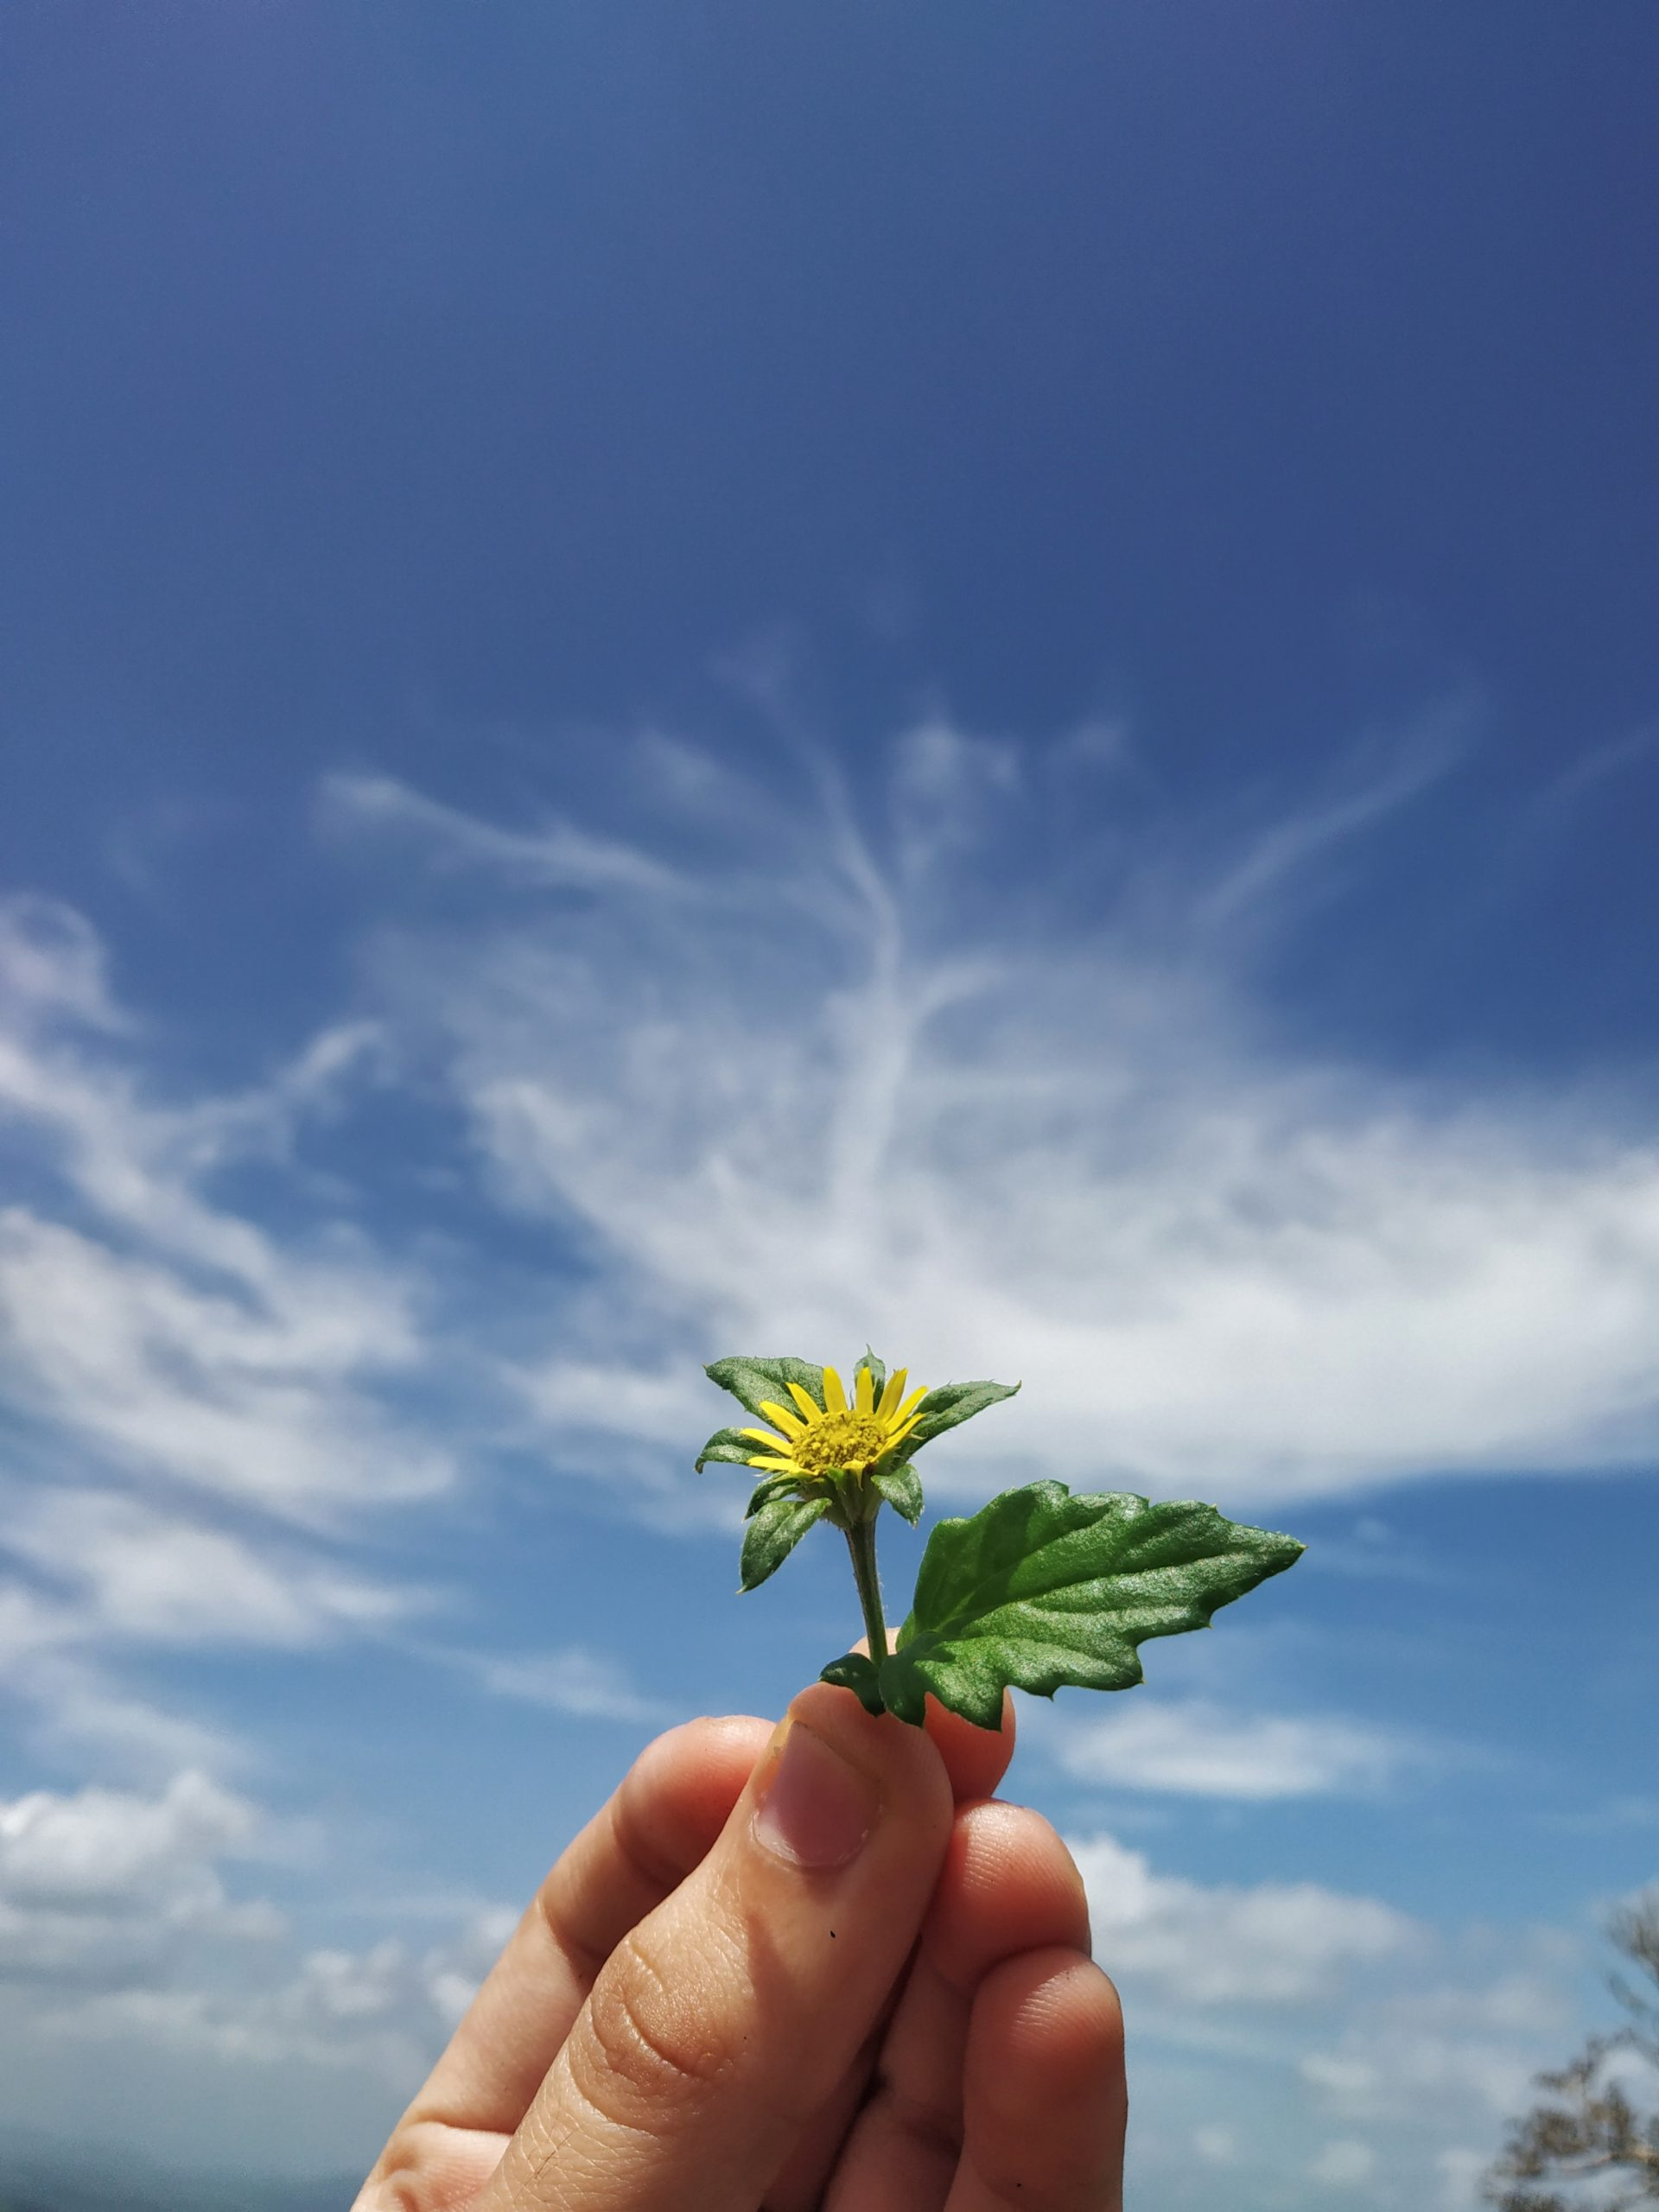 A cut flower in hand